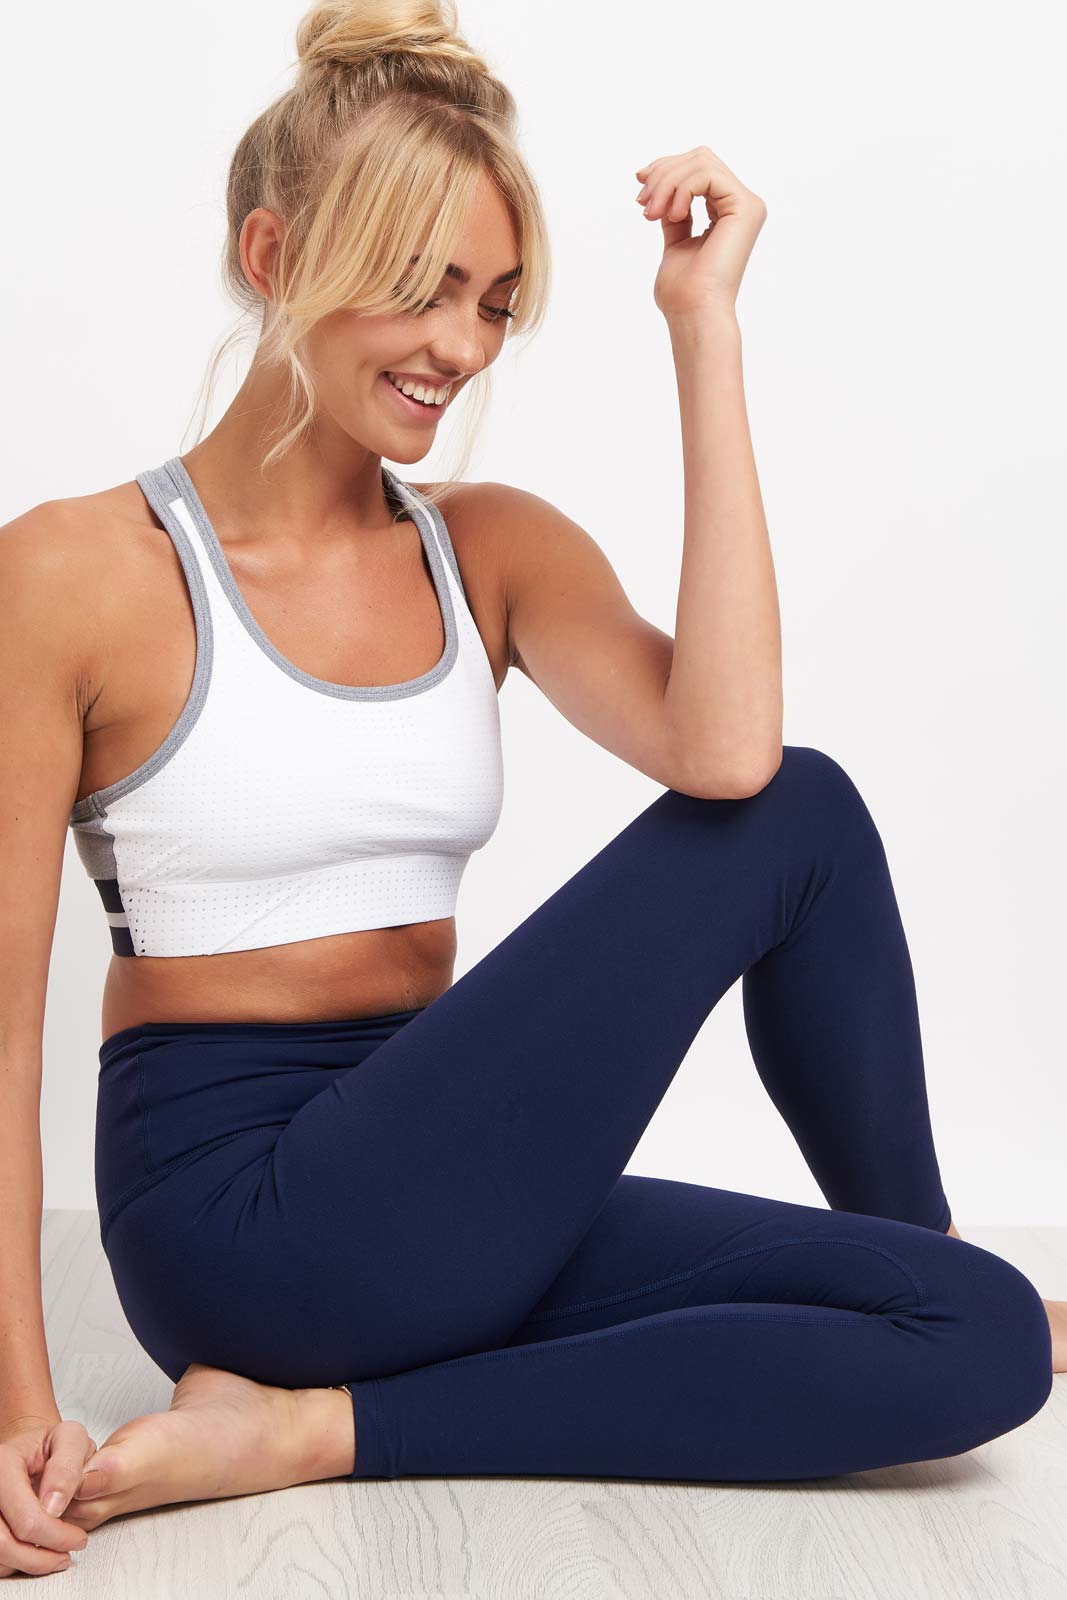 Beyond Yoga High Waist Legging - Valor Navy image 4 - The Sports Edit